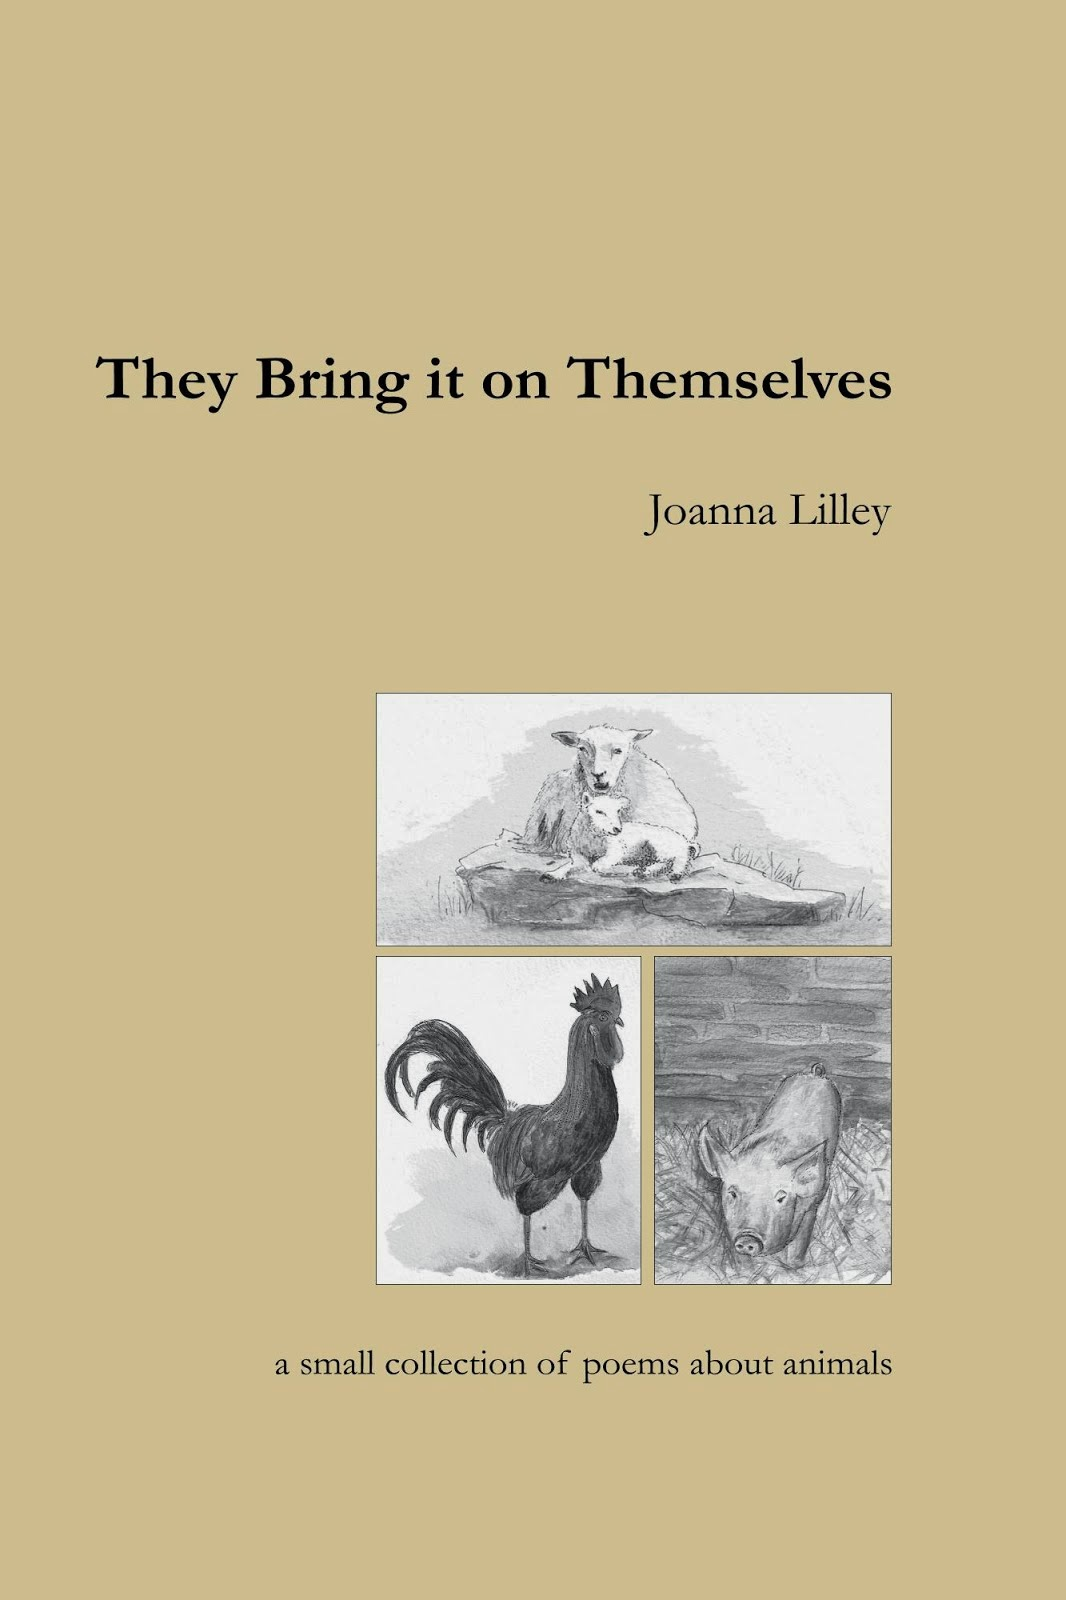 They Bring it on Themselves (Snapdragon Press) by Joanna Lilley